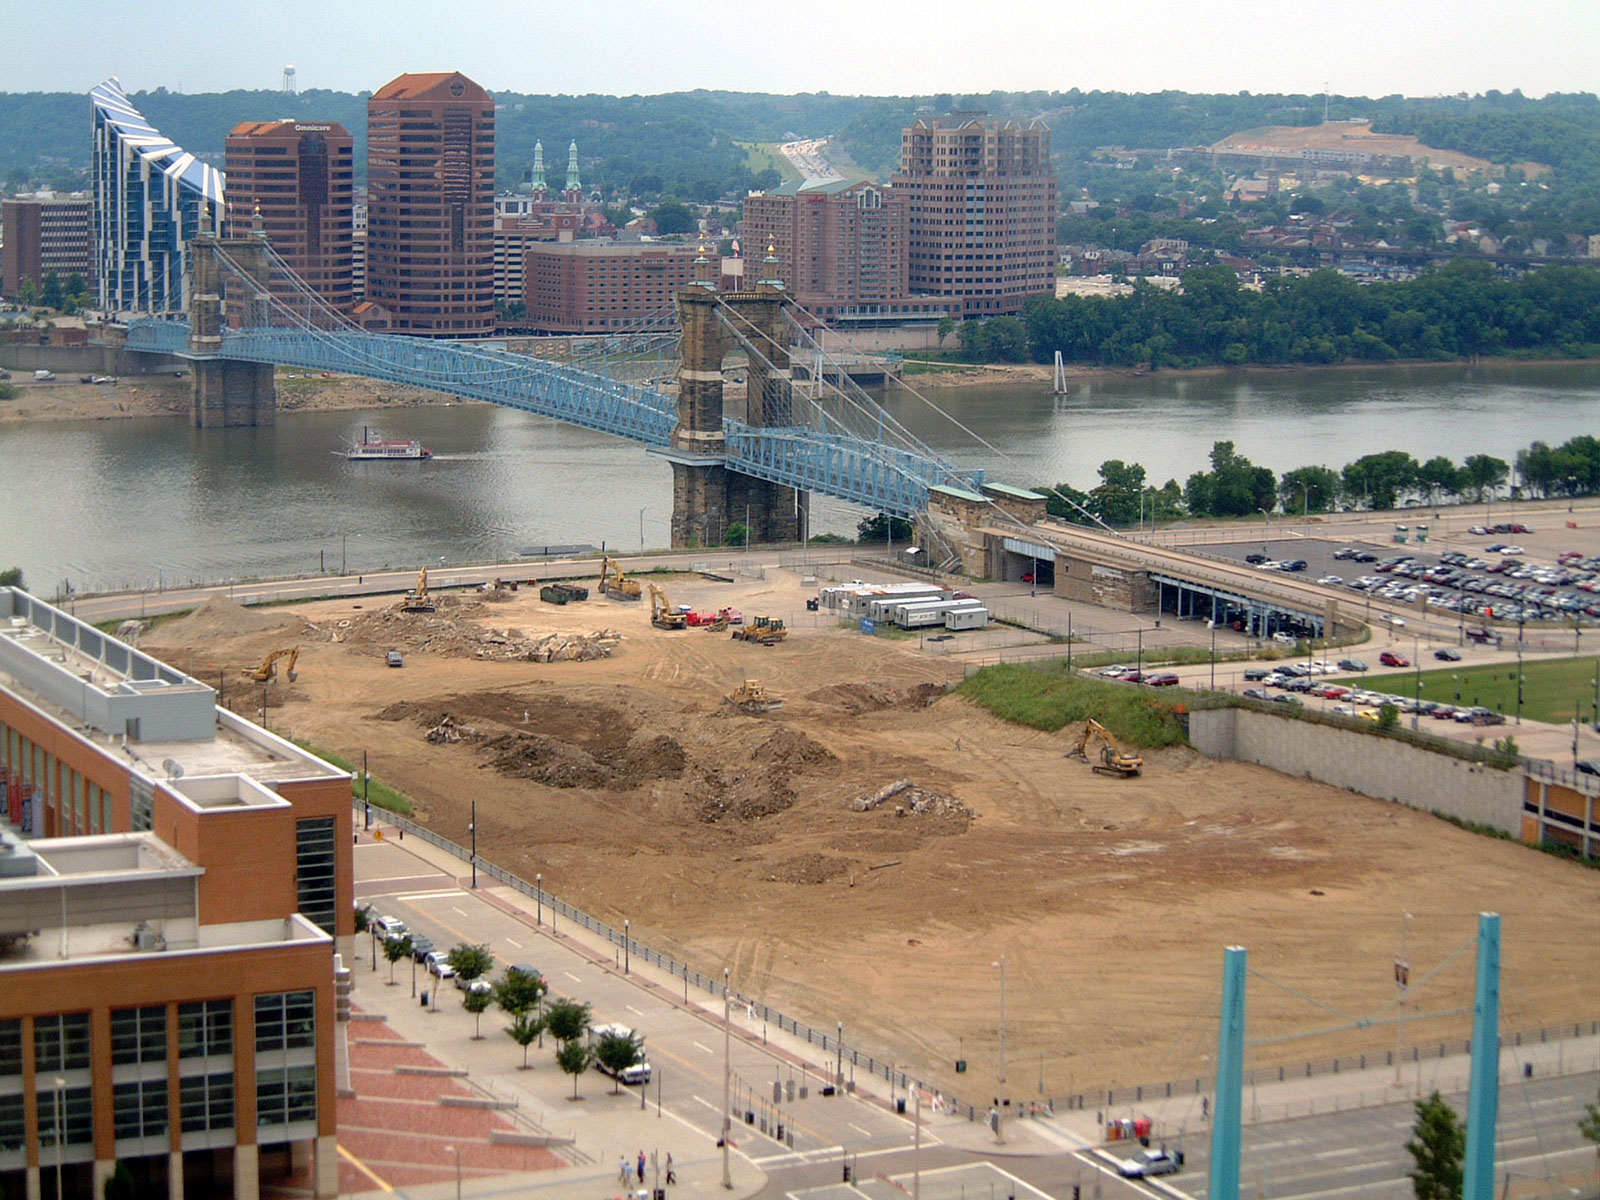 Groundbreaking for The Banks riverfront development